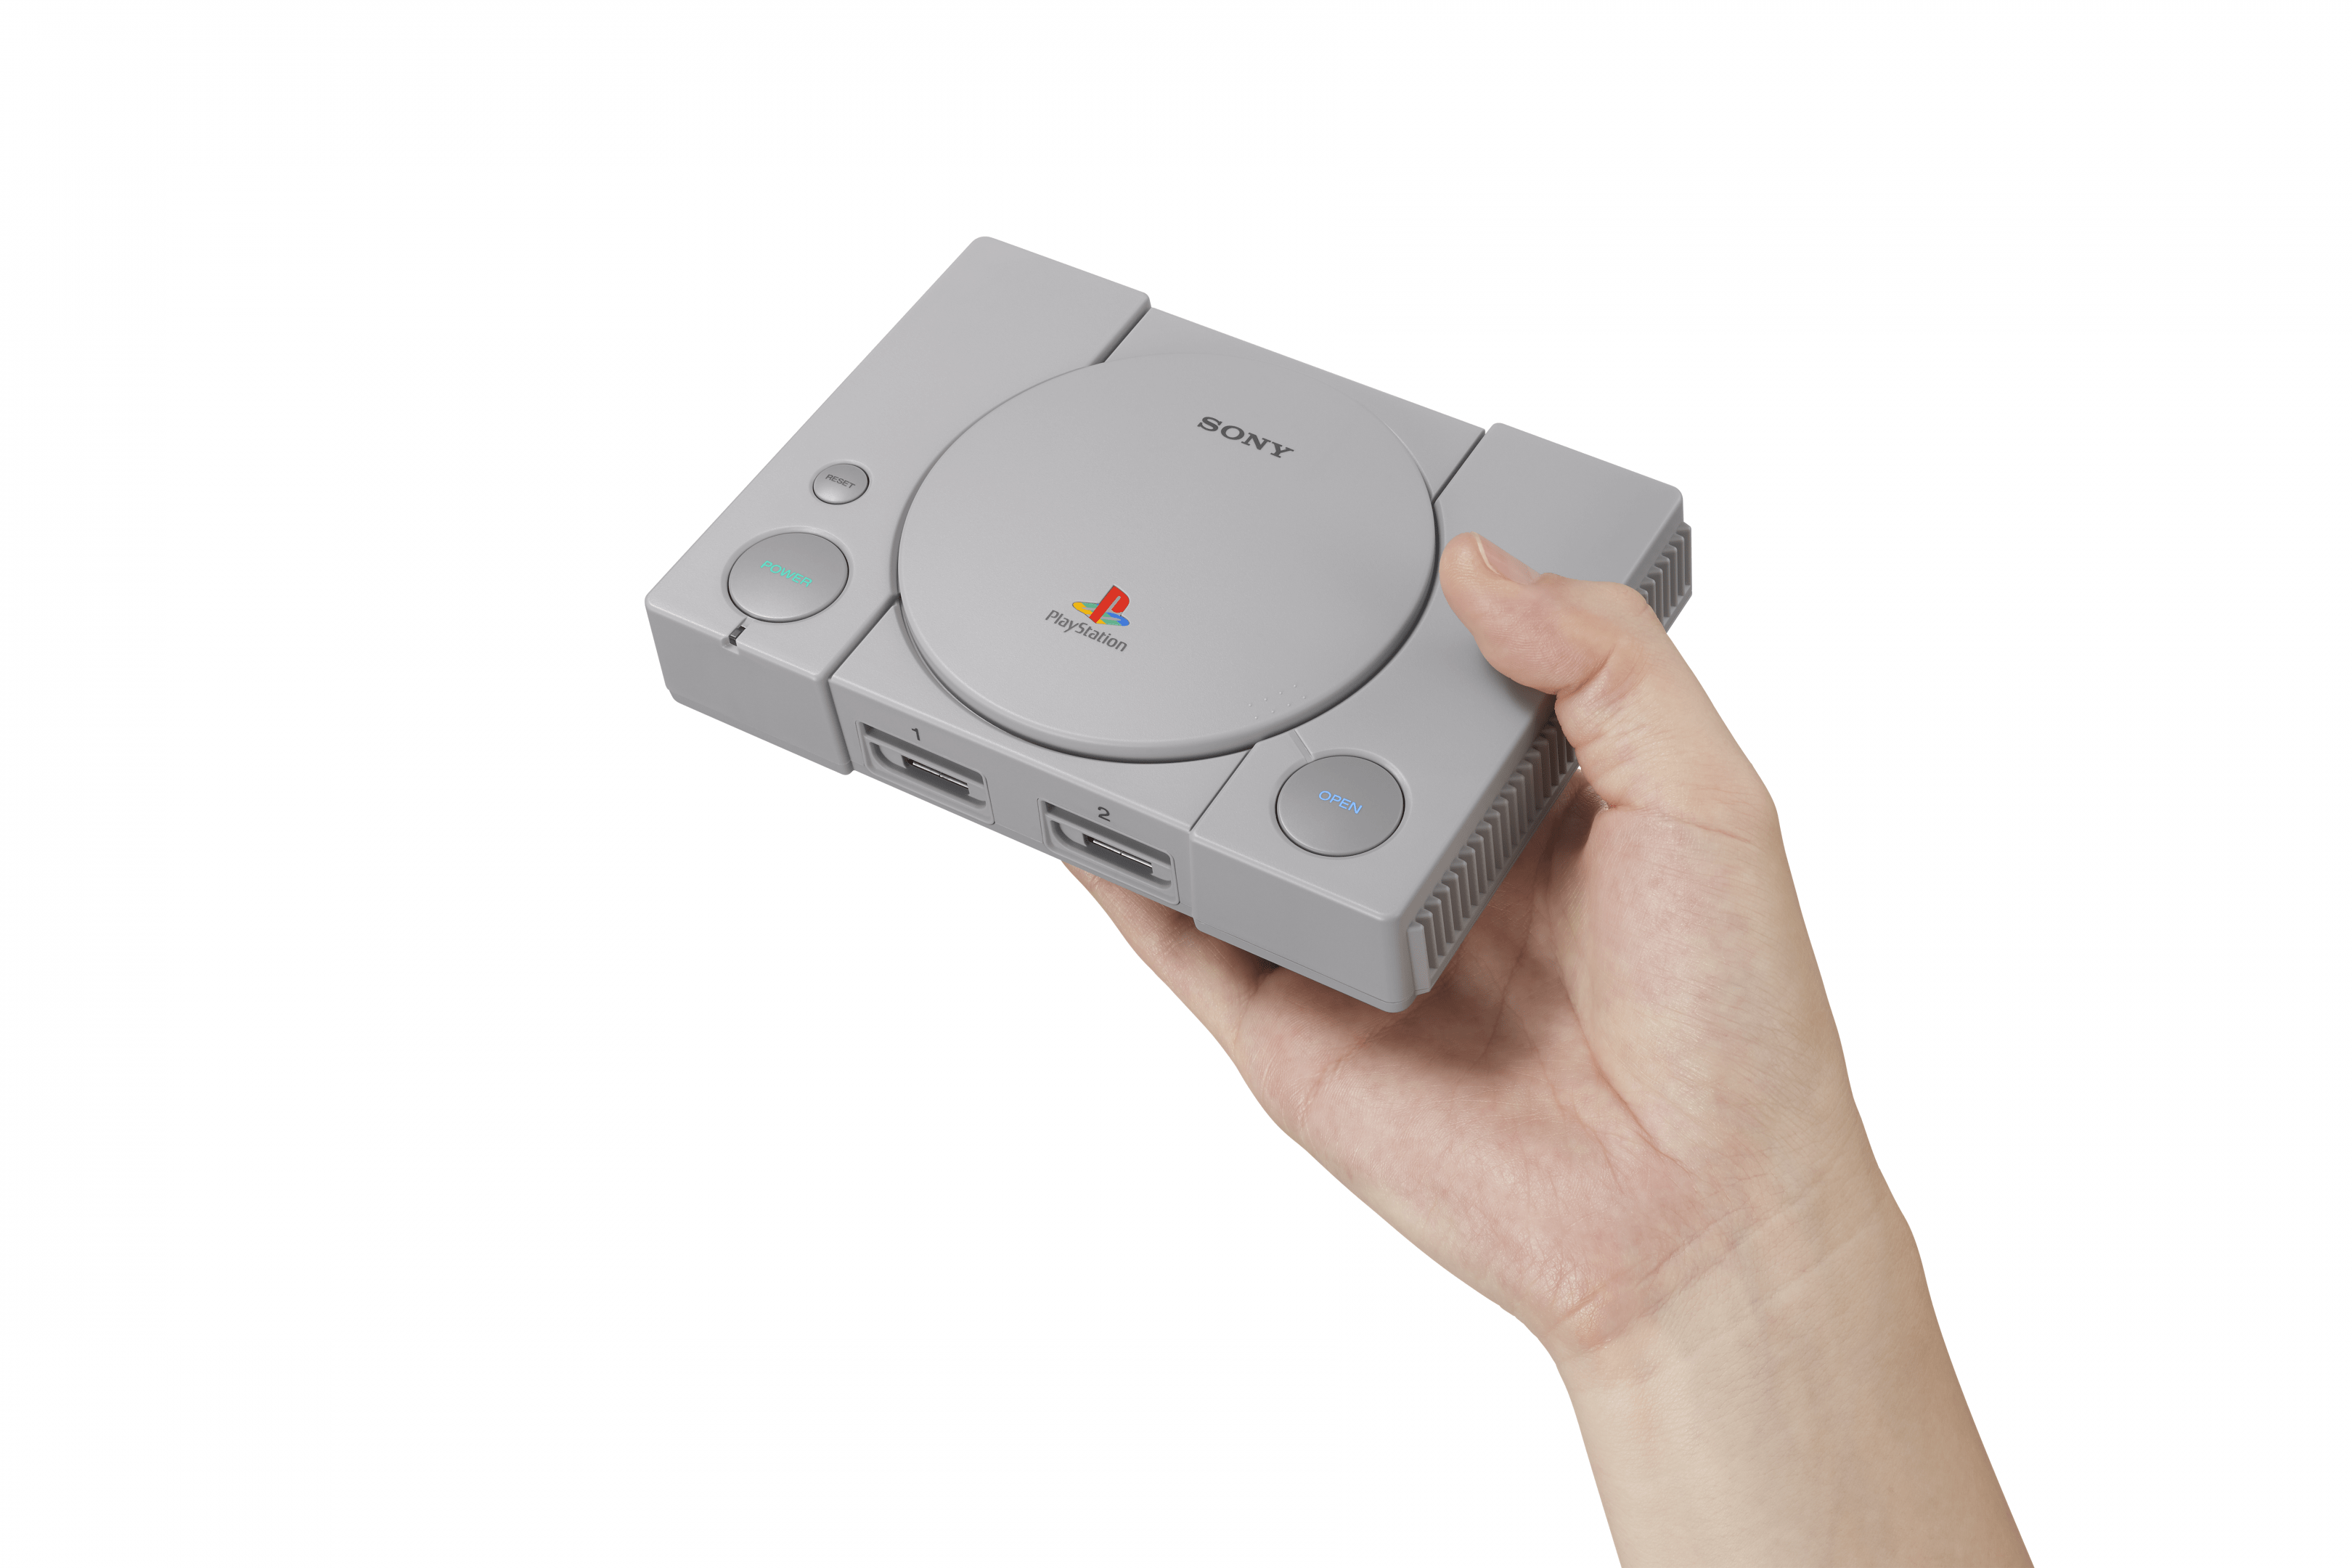 In Pictures – Take a look at the PlayStation Classic Photos